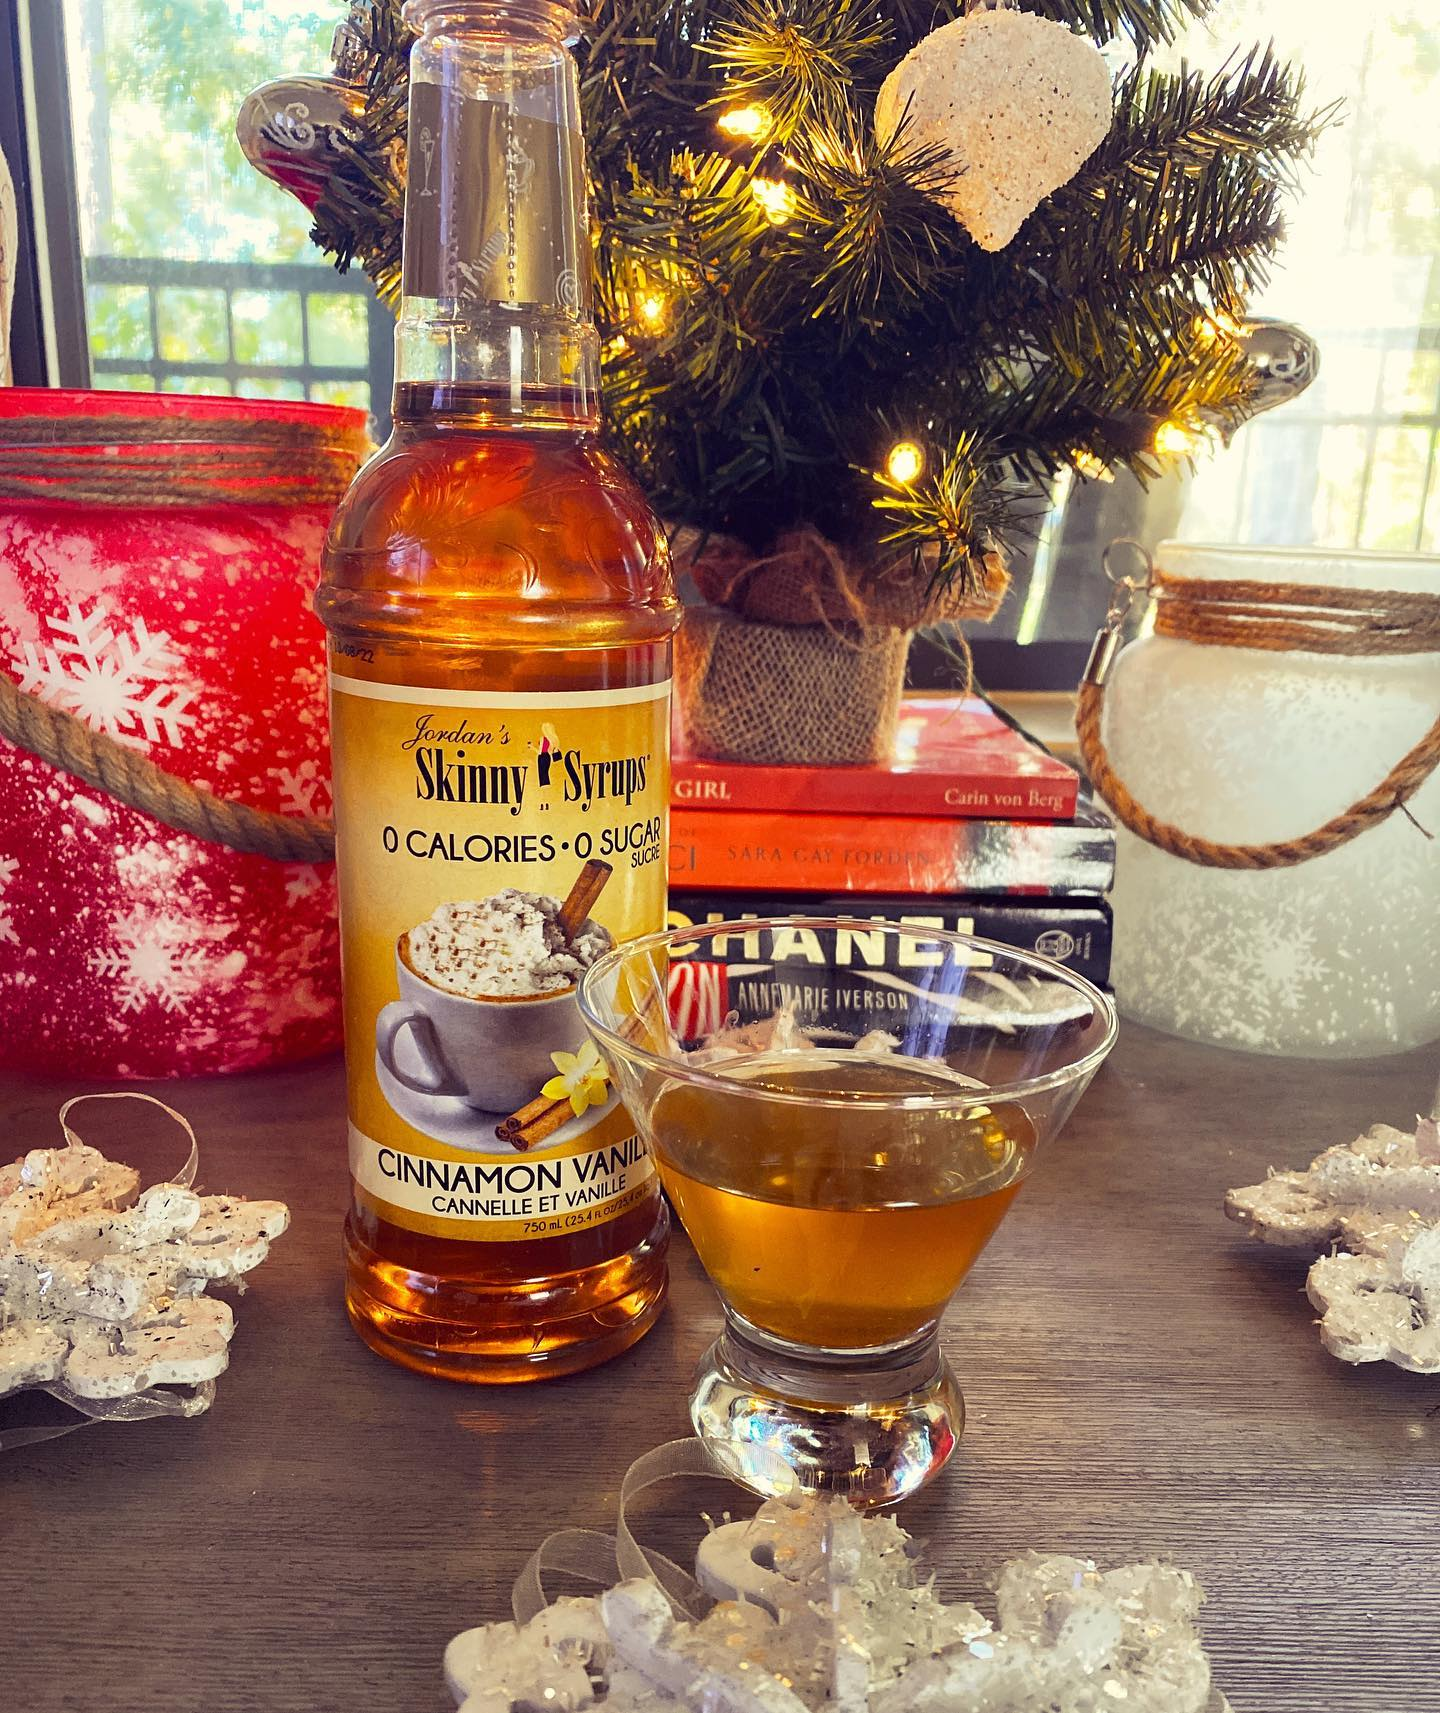 Gingerbread Man Bourbon